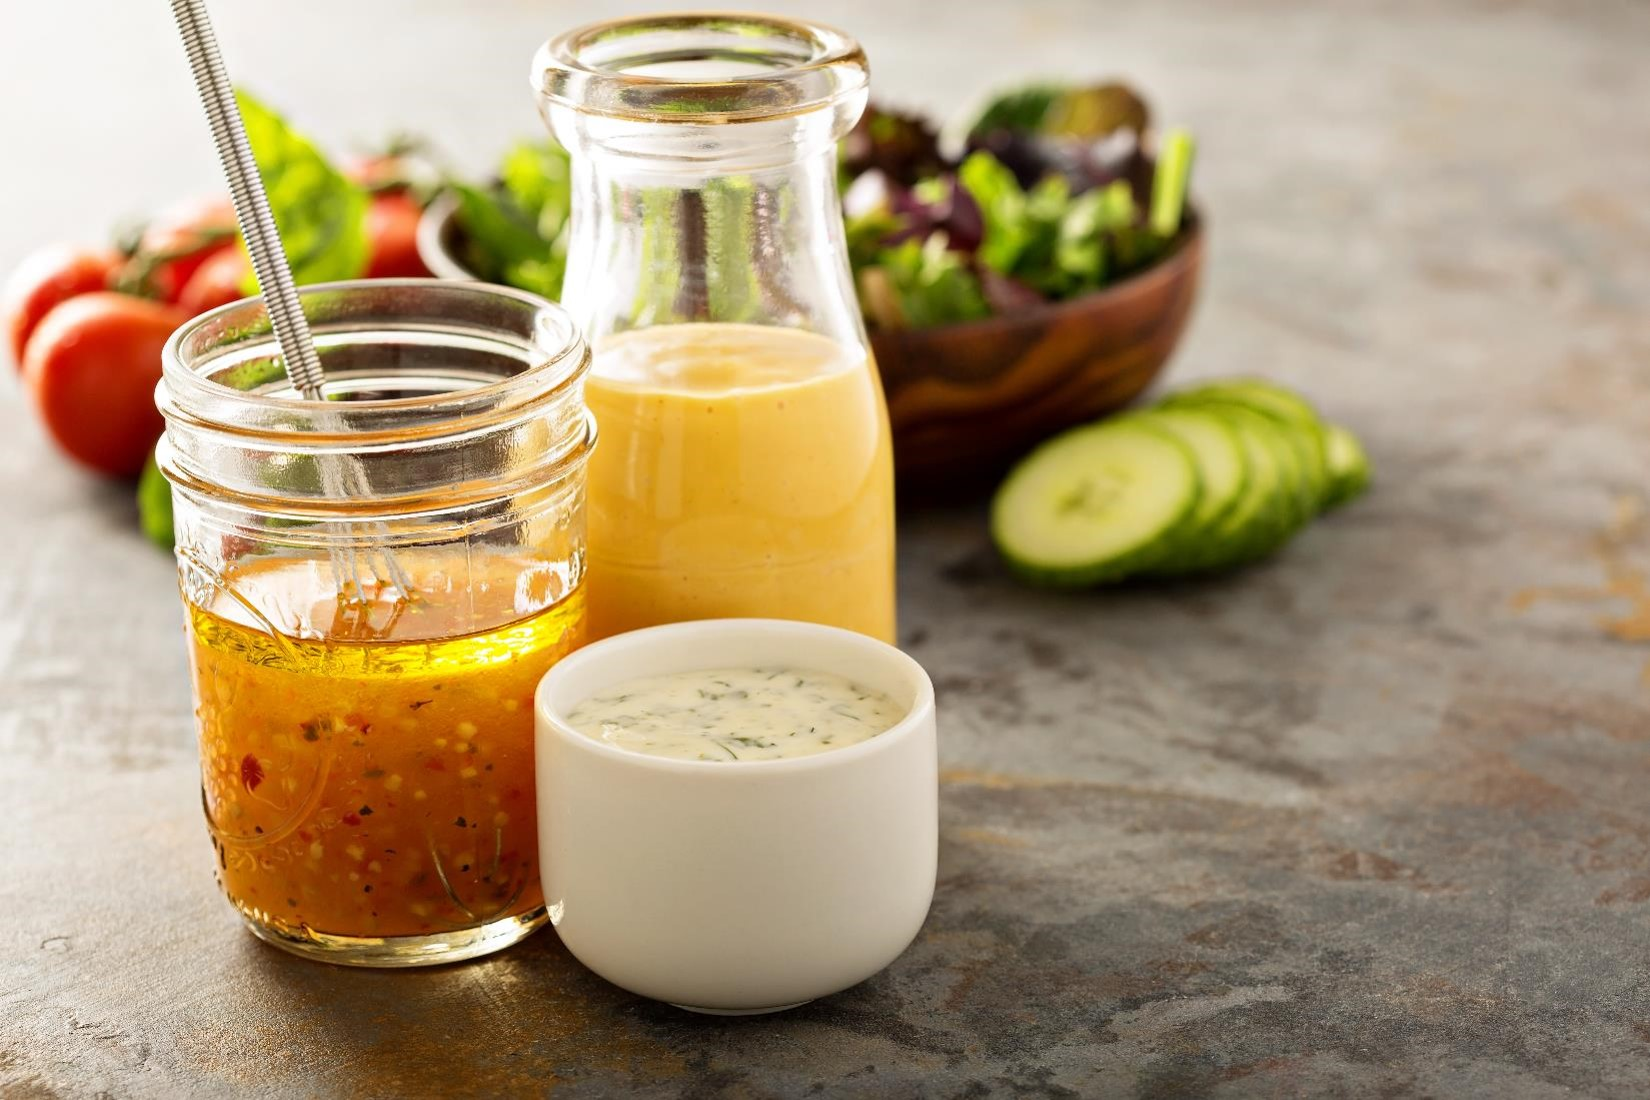 FIND OUT MORE ABOUT VINAIGRETTE SEASONING